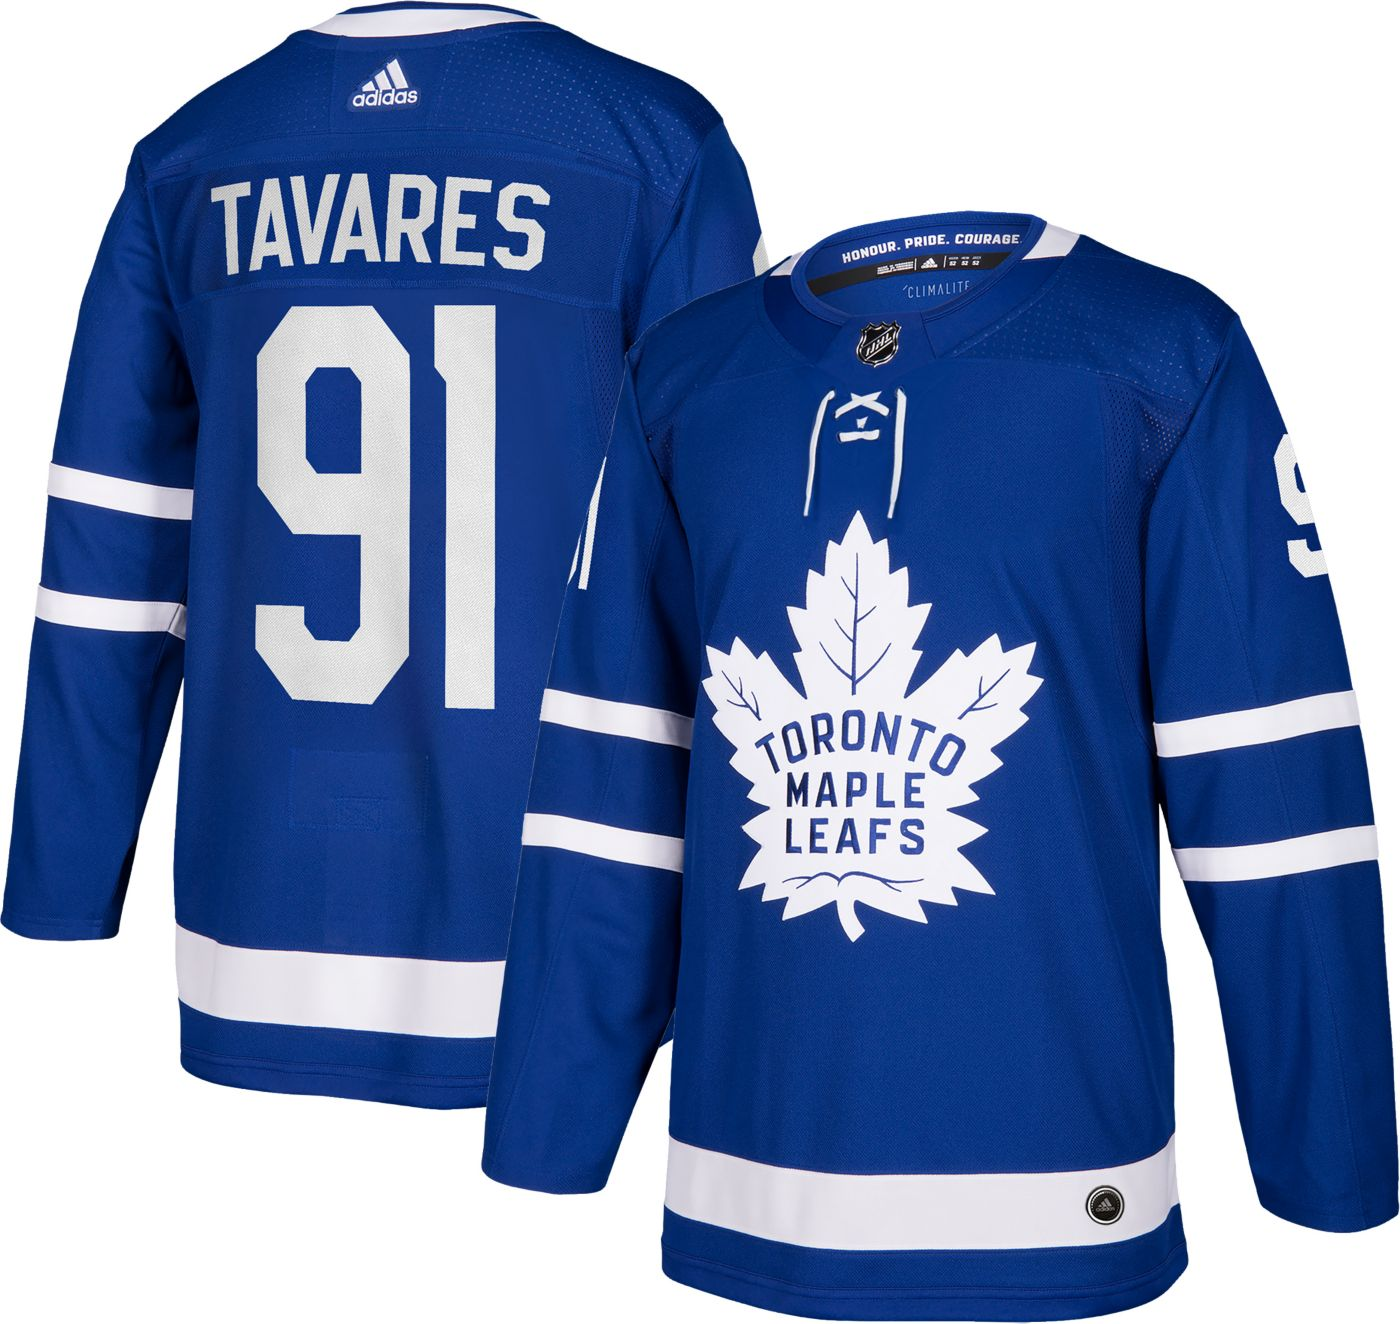 adidas Men's Toronto Maple Leafs John Taveras #91 Authentic Pro Home Jersey